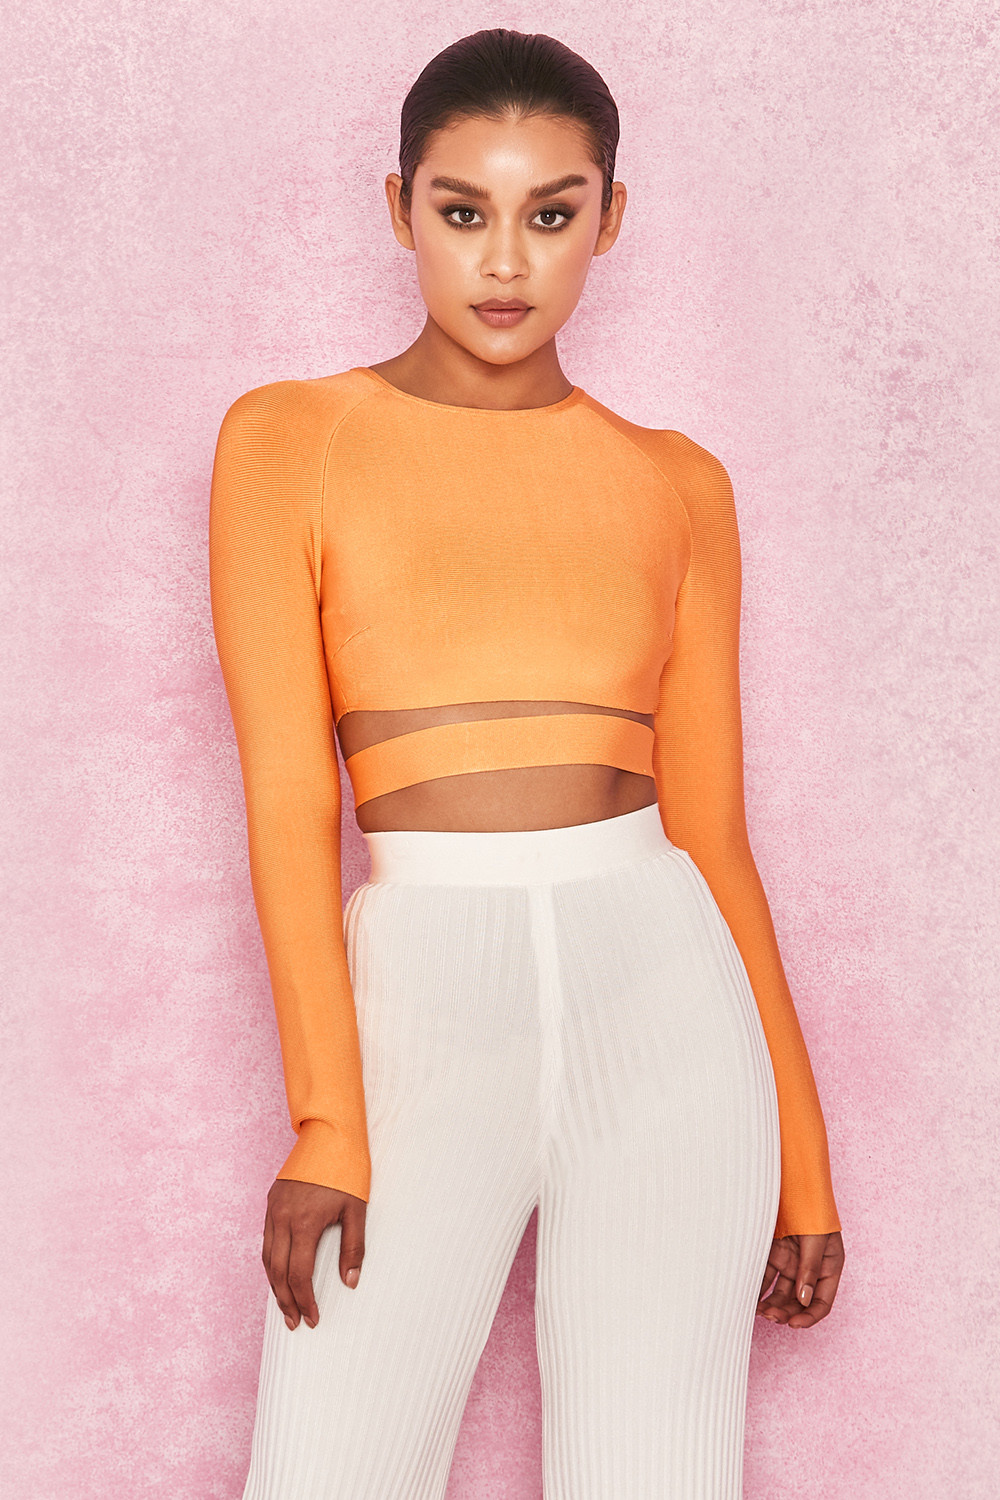 16a930fe3a1 Clothing : Tops : 'Talika' Neon Orange Bandage Crop Top with Waistband